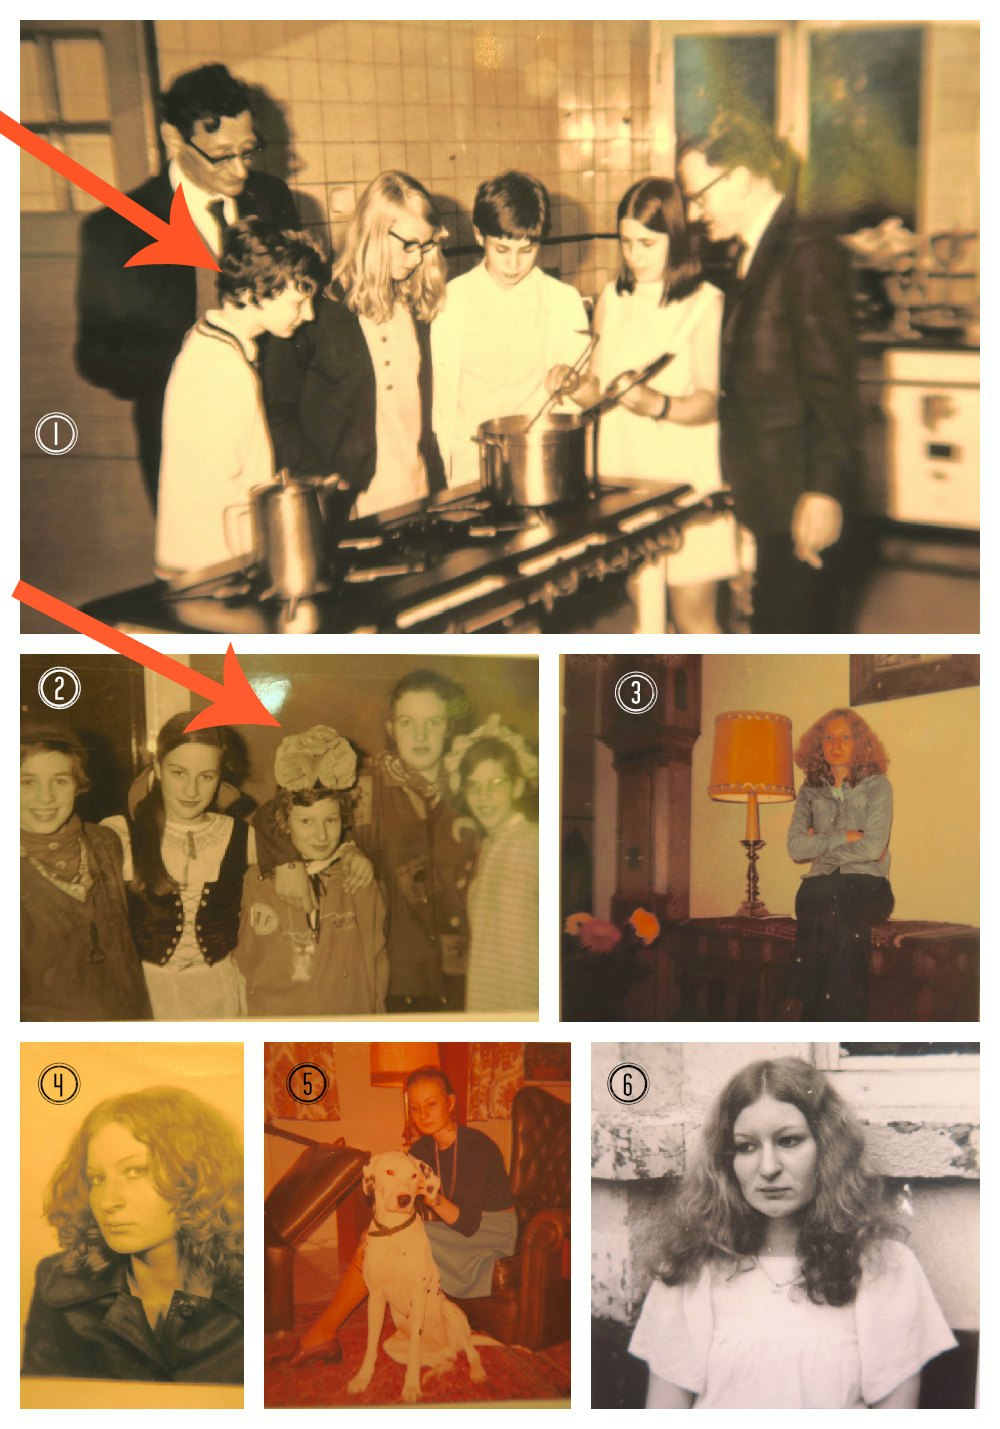 Childhood pictures from dutch woman |curlytraveller.com